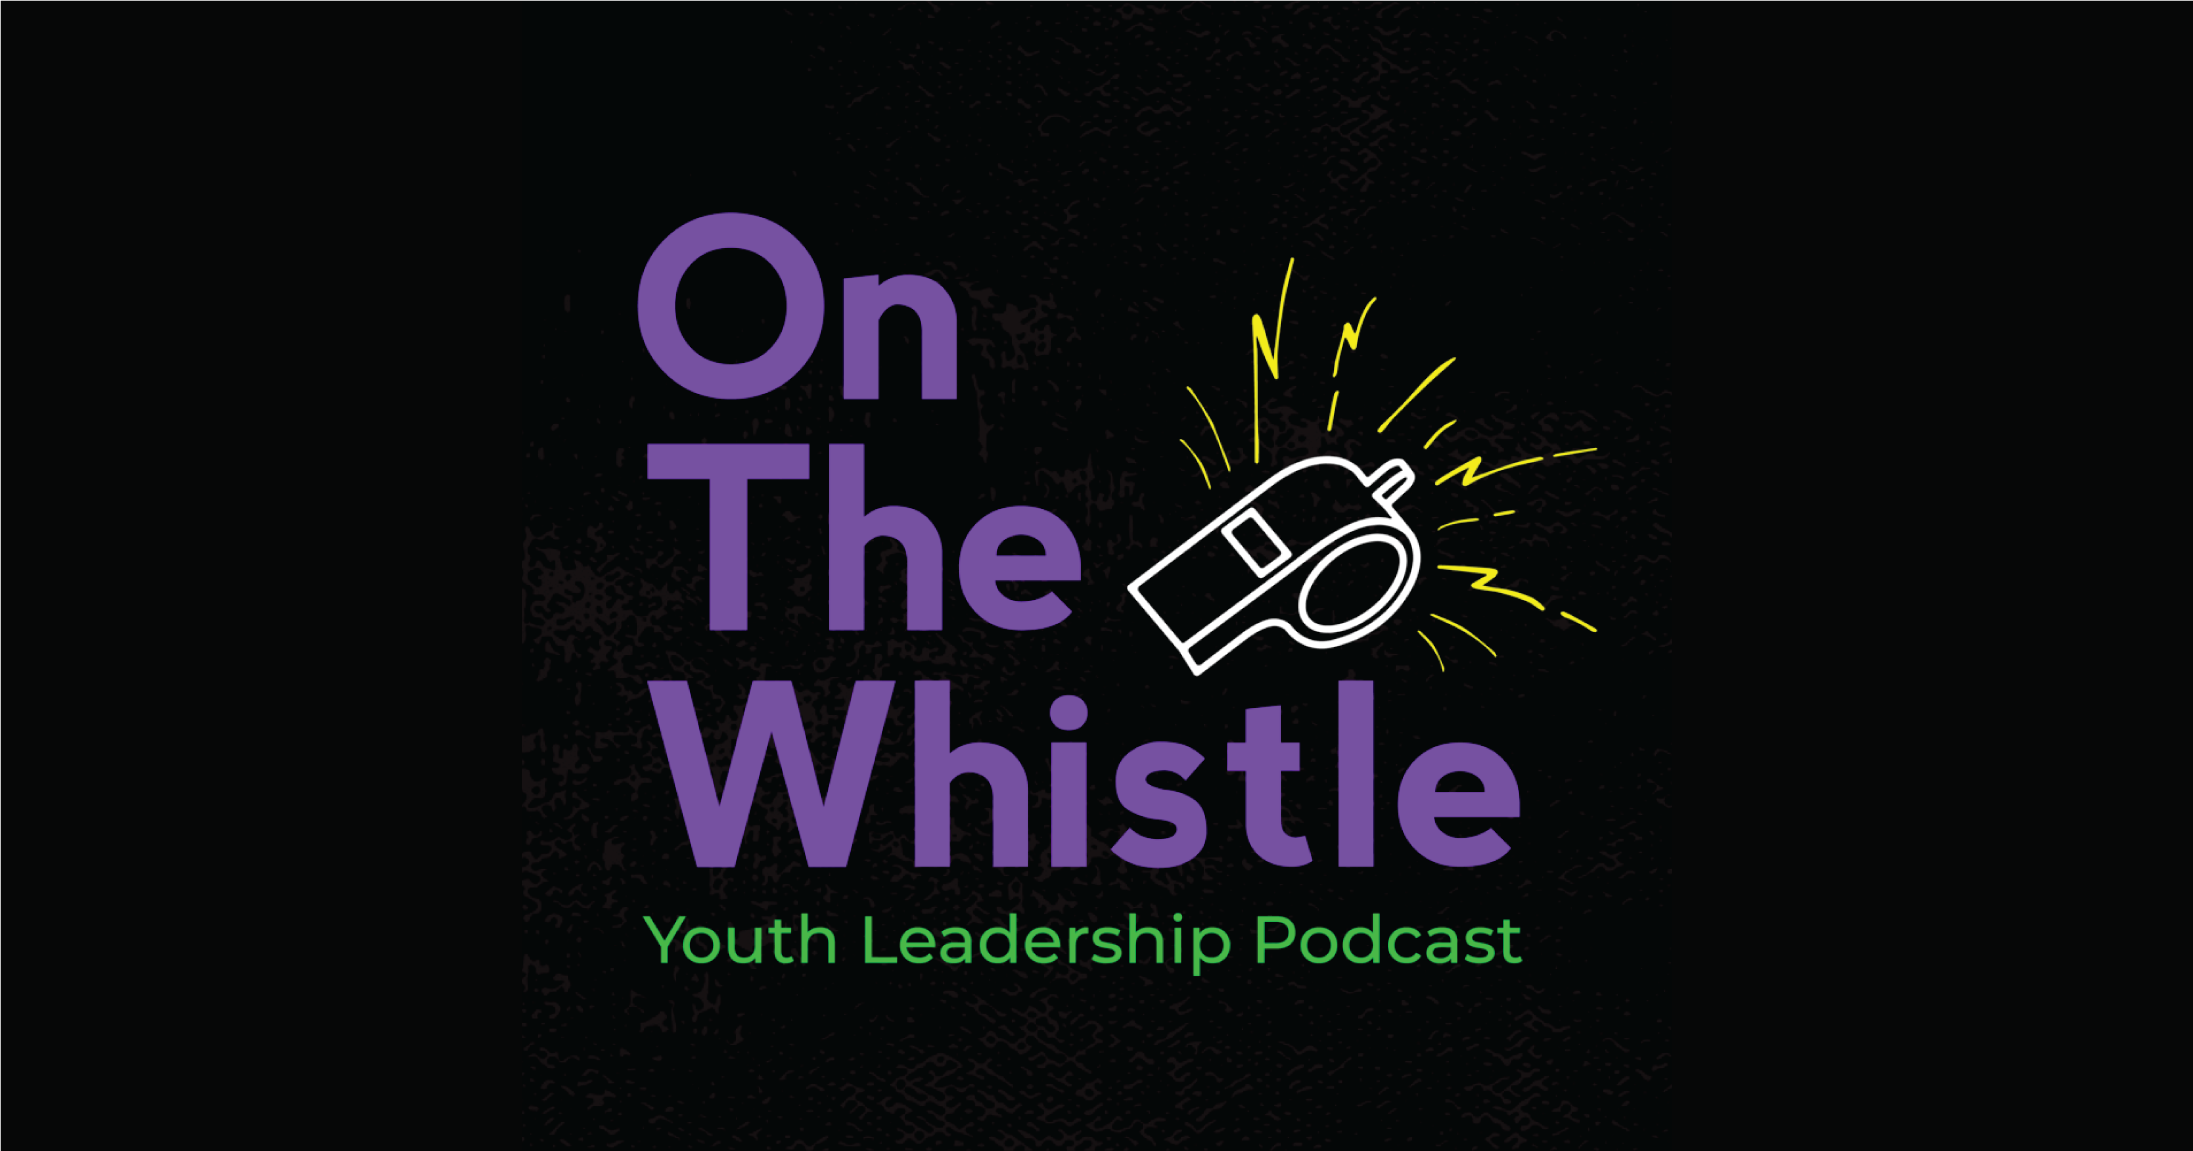 On The Whistle, Youth Leadership Podcast